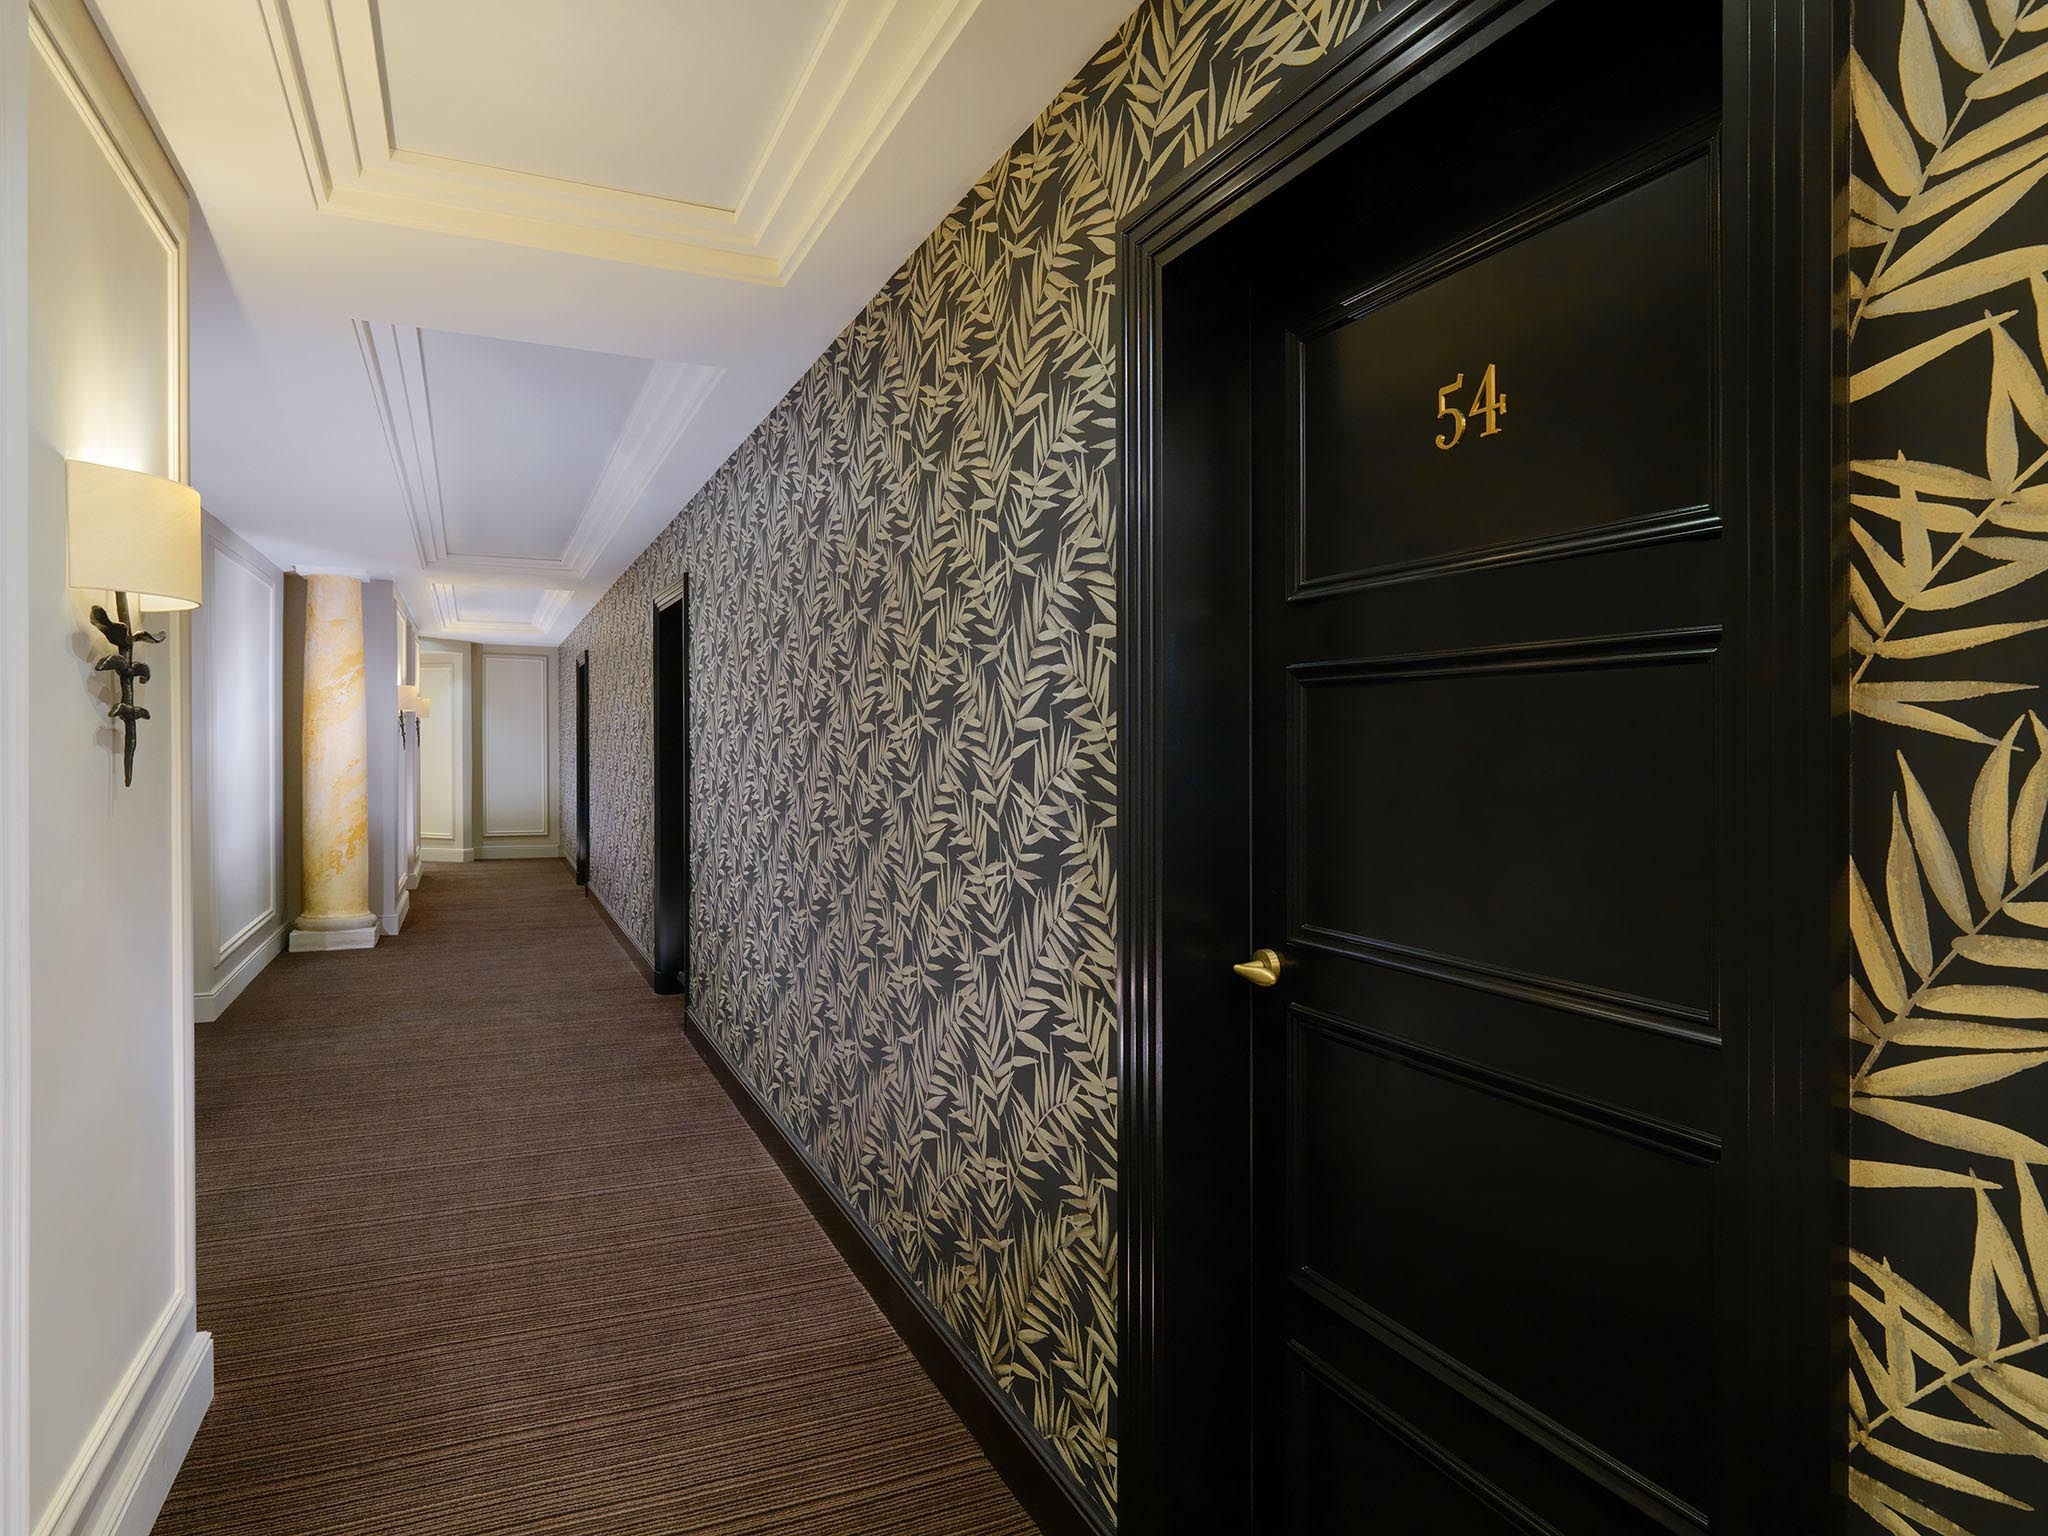 Luxury Hotel Vienna- Hotelrooms at the Bristol